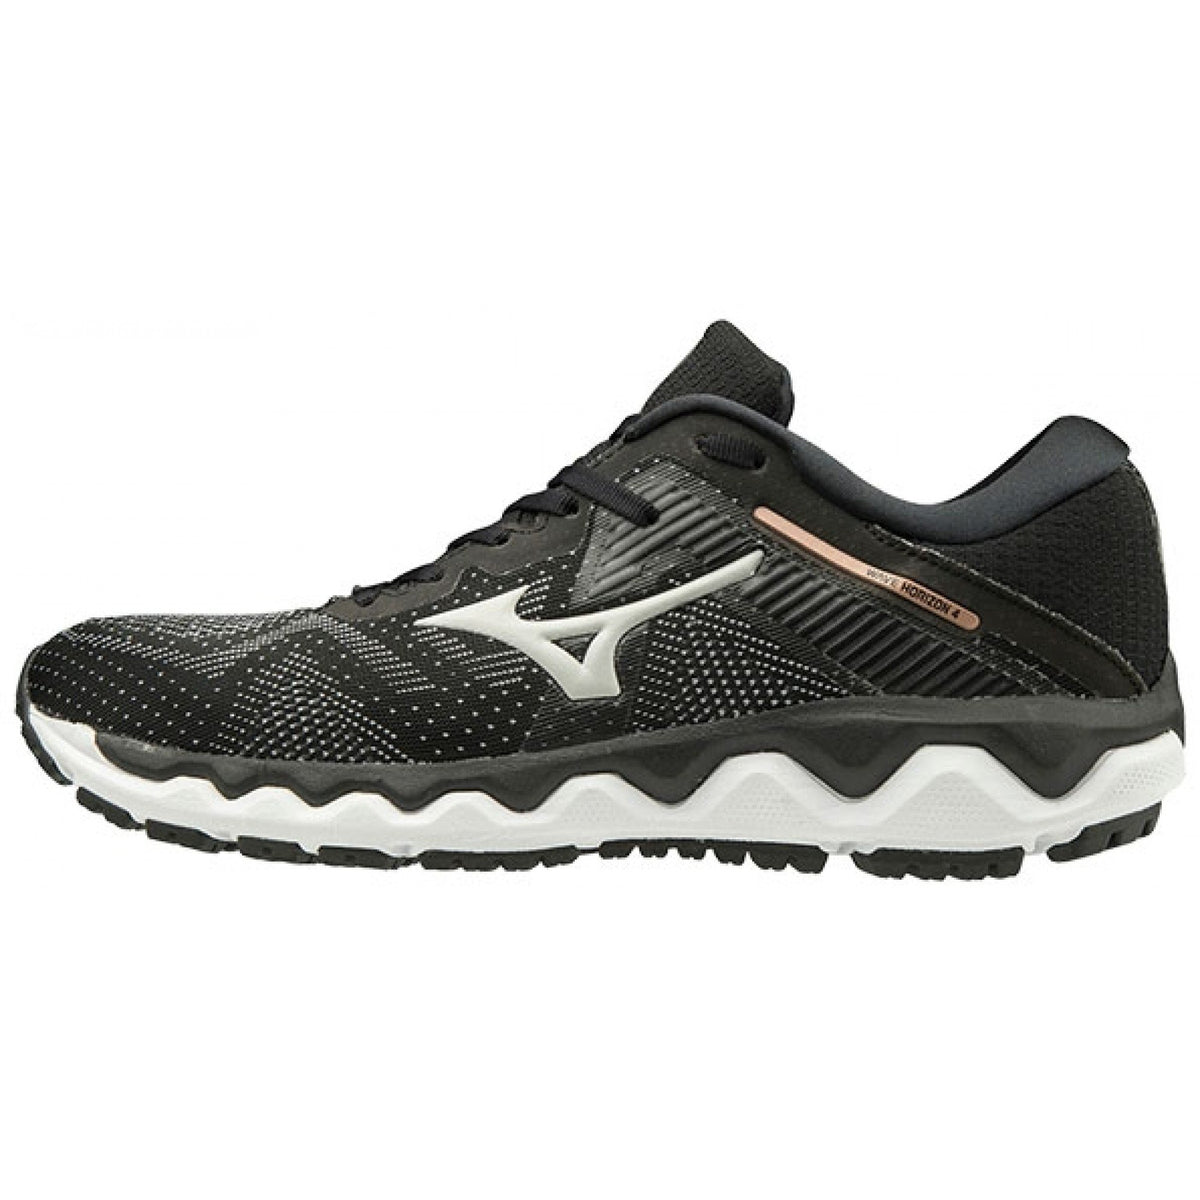 Mizuno Wave Horizon 4 Womens - Sole Motive